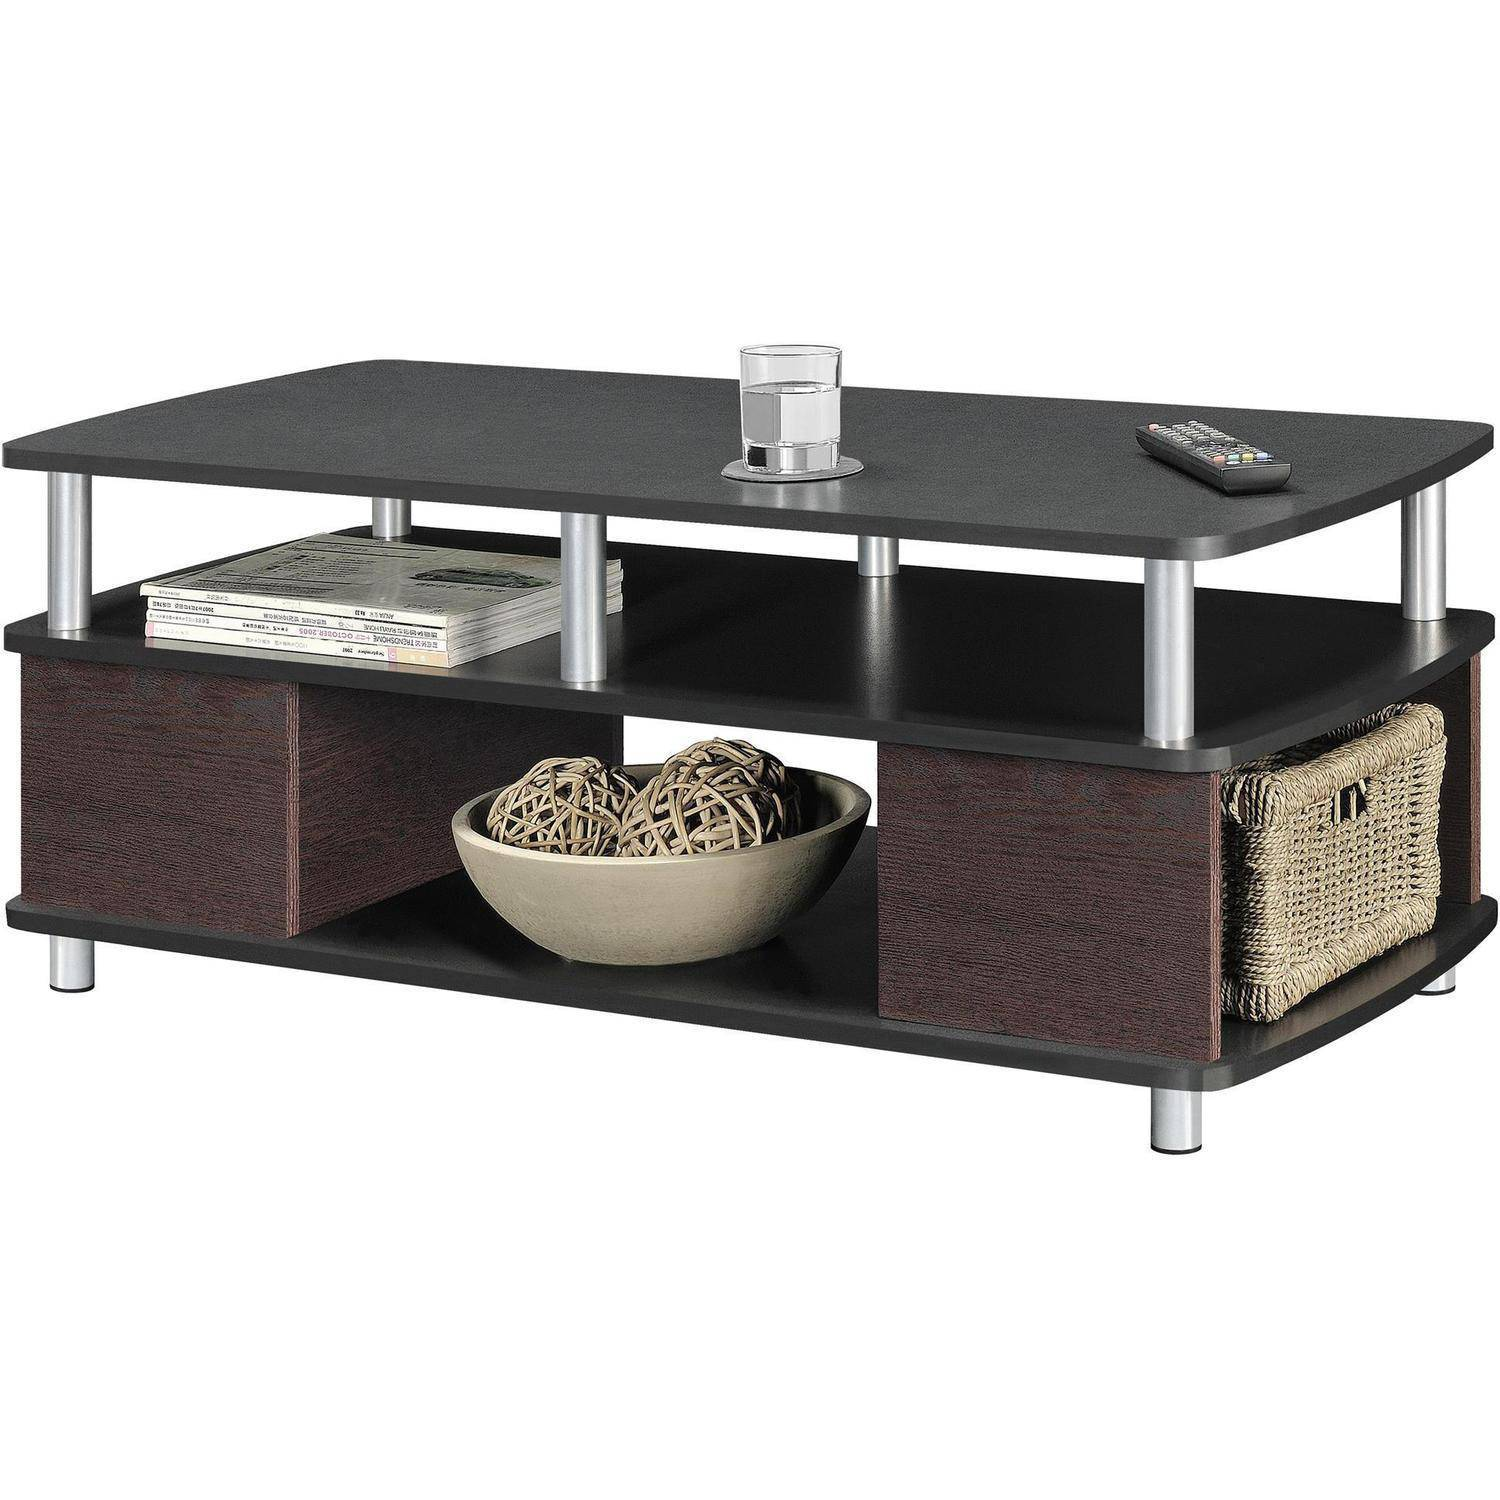 Wood coffee cocktail table living room and 50 similar items Contemporary coffee tables with storage